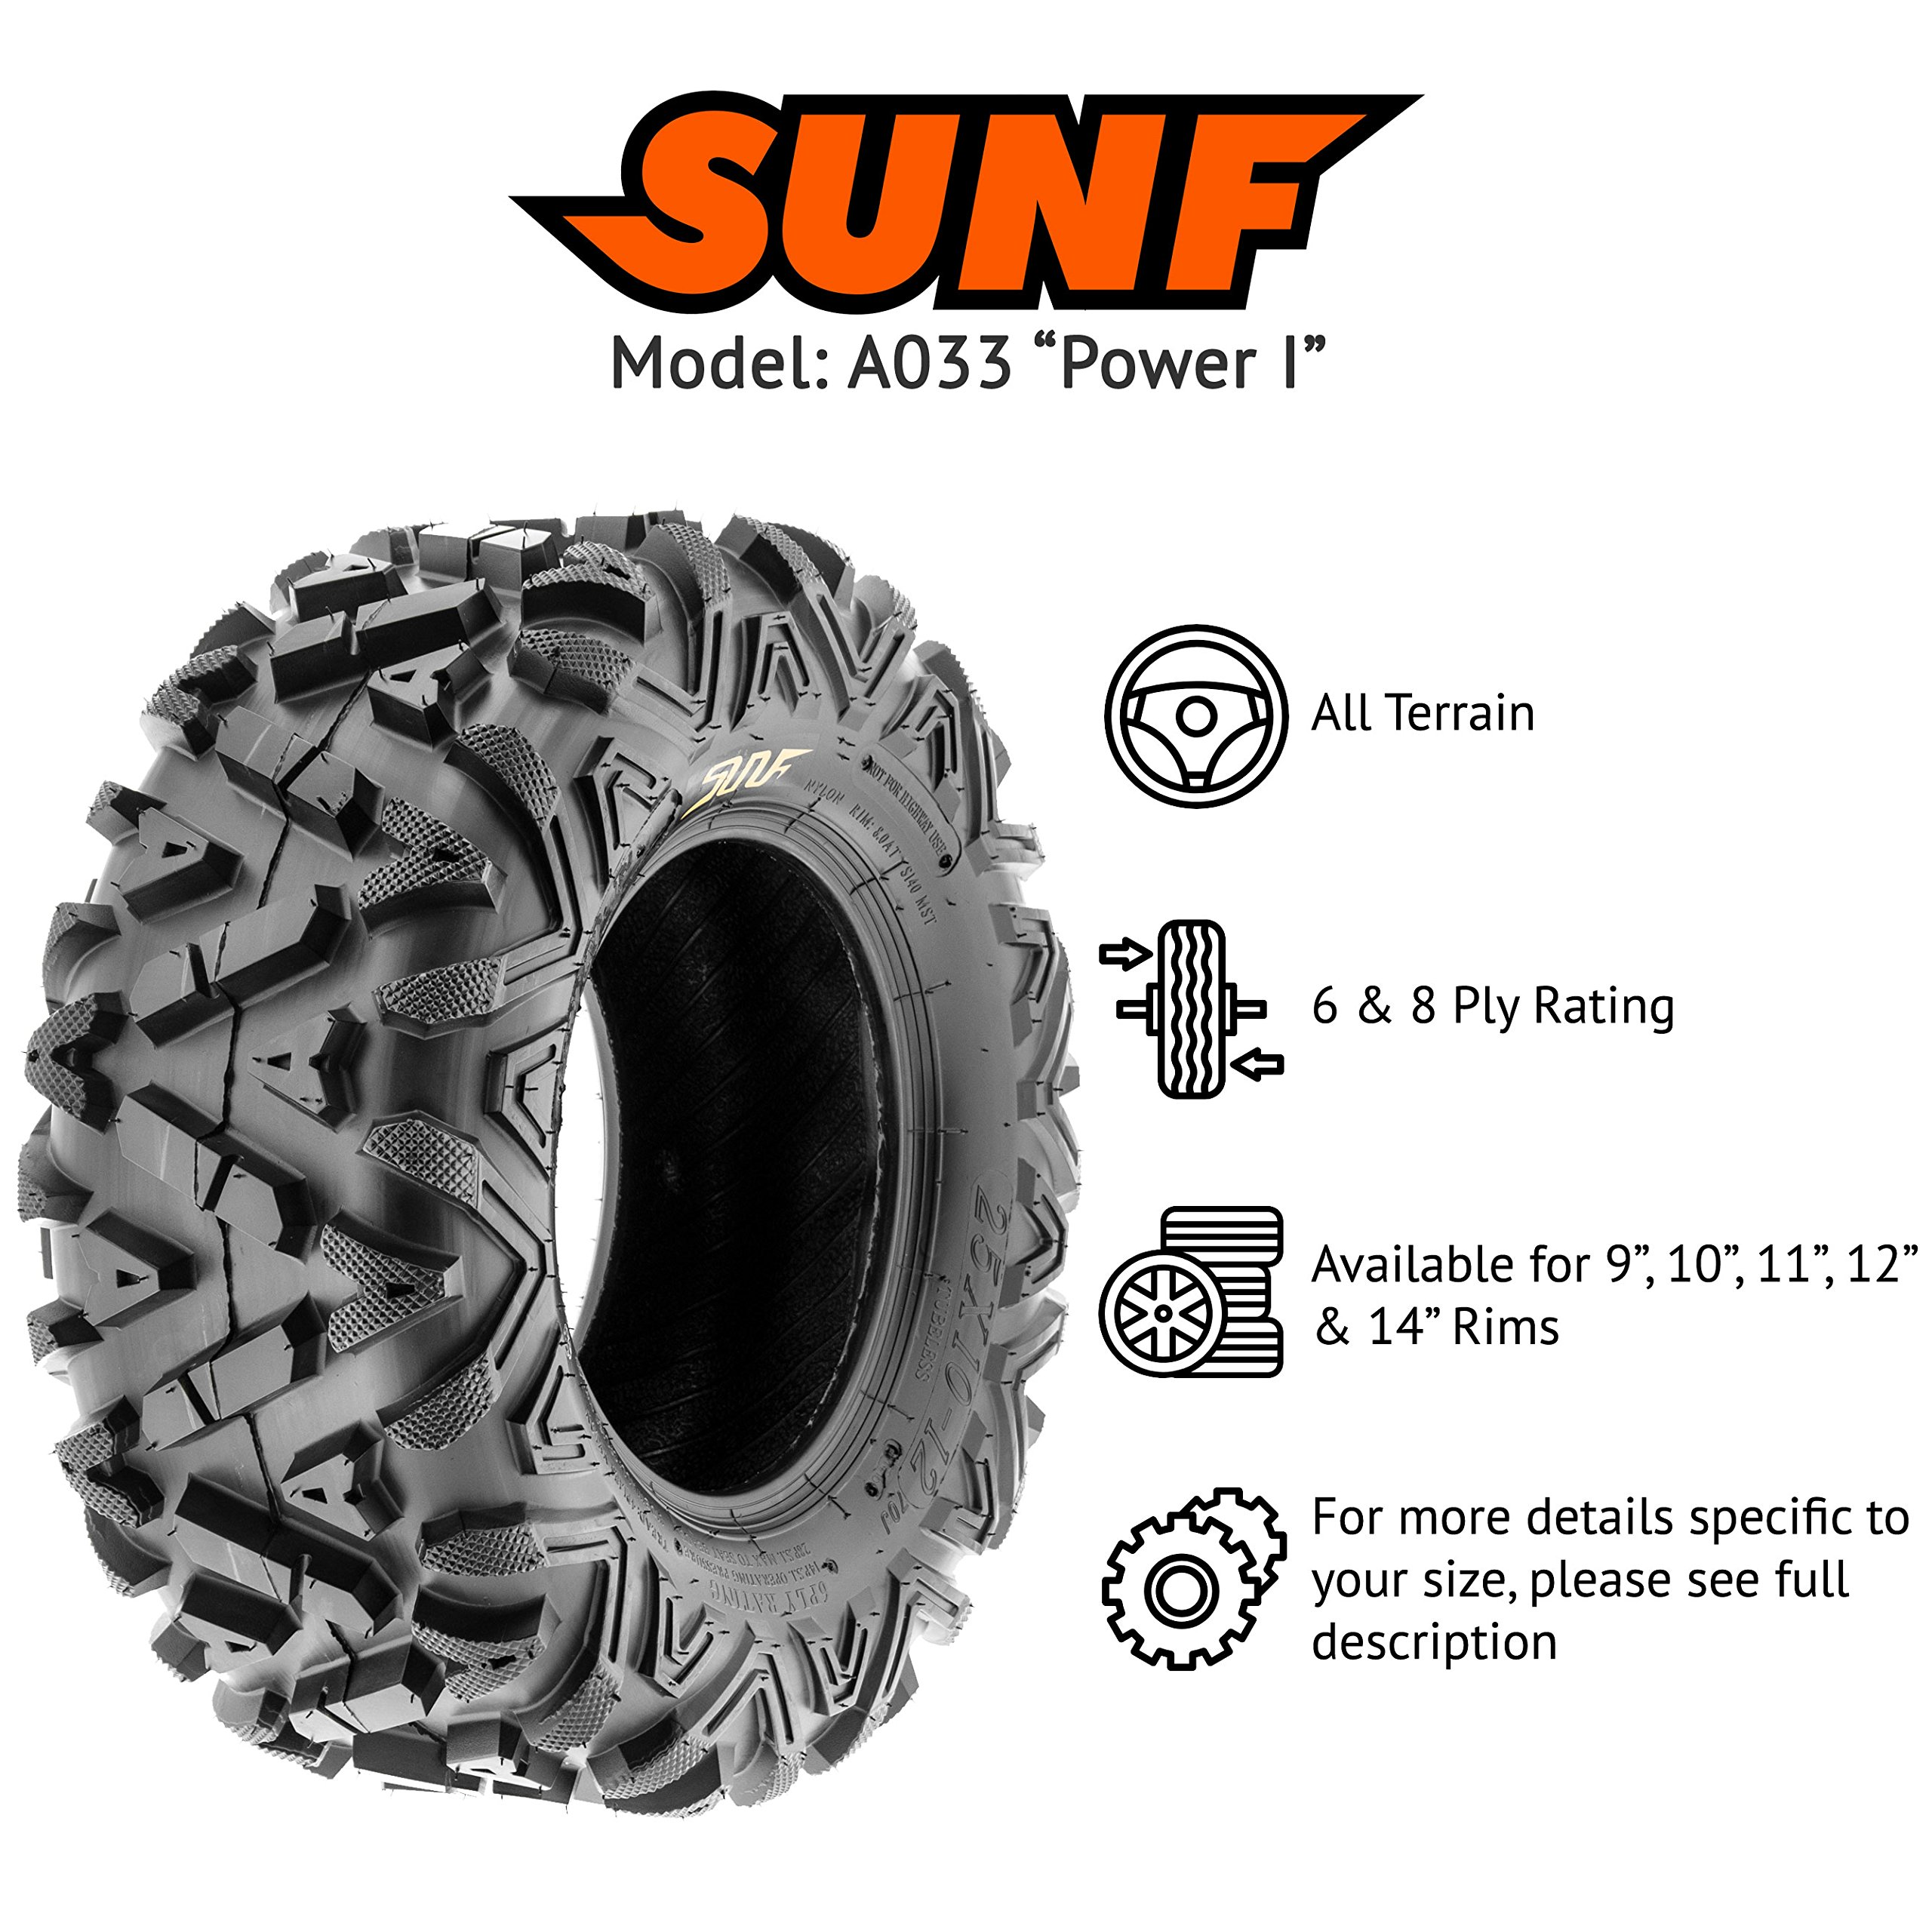 Pair of 2 SunF A033 Power.I AT 25x10-11 ATV UTV Off-Road Tires, All-Terrain, 6 PR, Tubeless by SUNF (Image #2)